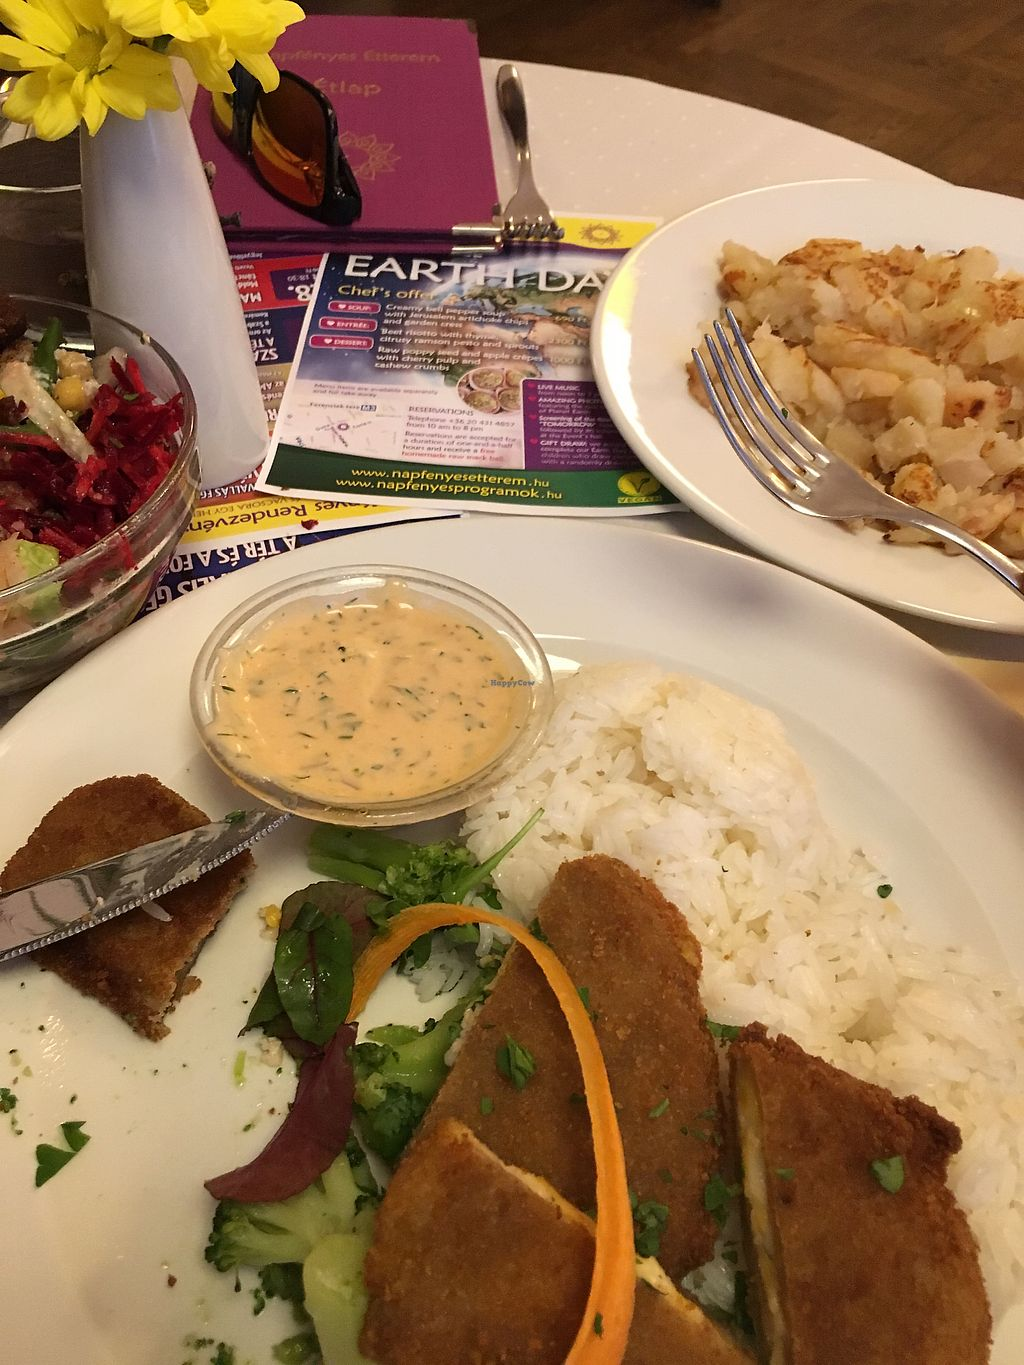 """Photo of Napfenyes Restaurant and Pastry Shop  by <a href=""""/members/profile/stefalmer"""">stefalmer</a> <br/>Stuffed breaded seitan kiev with thousands islands dressing; smashed potatoes <br/> April 23, 2018  - <a href='/contact/abuse/image/18107/390127'>Report</a>"""